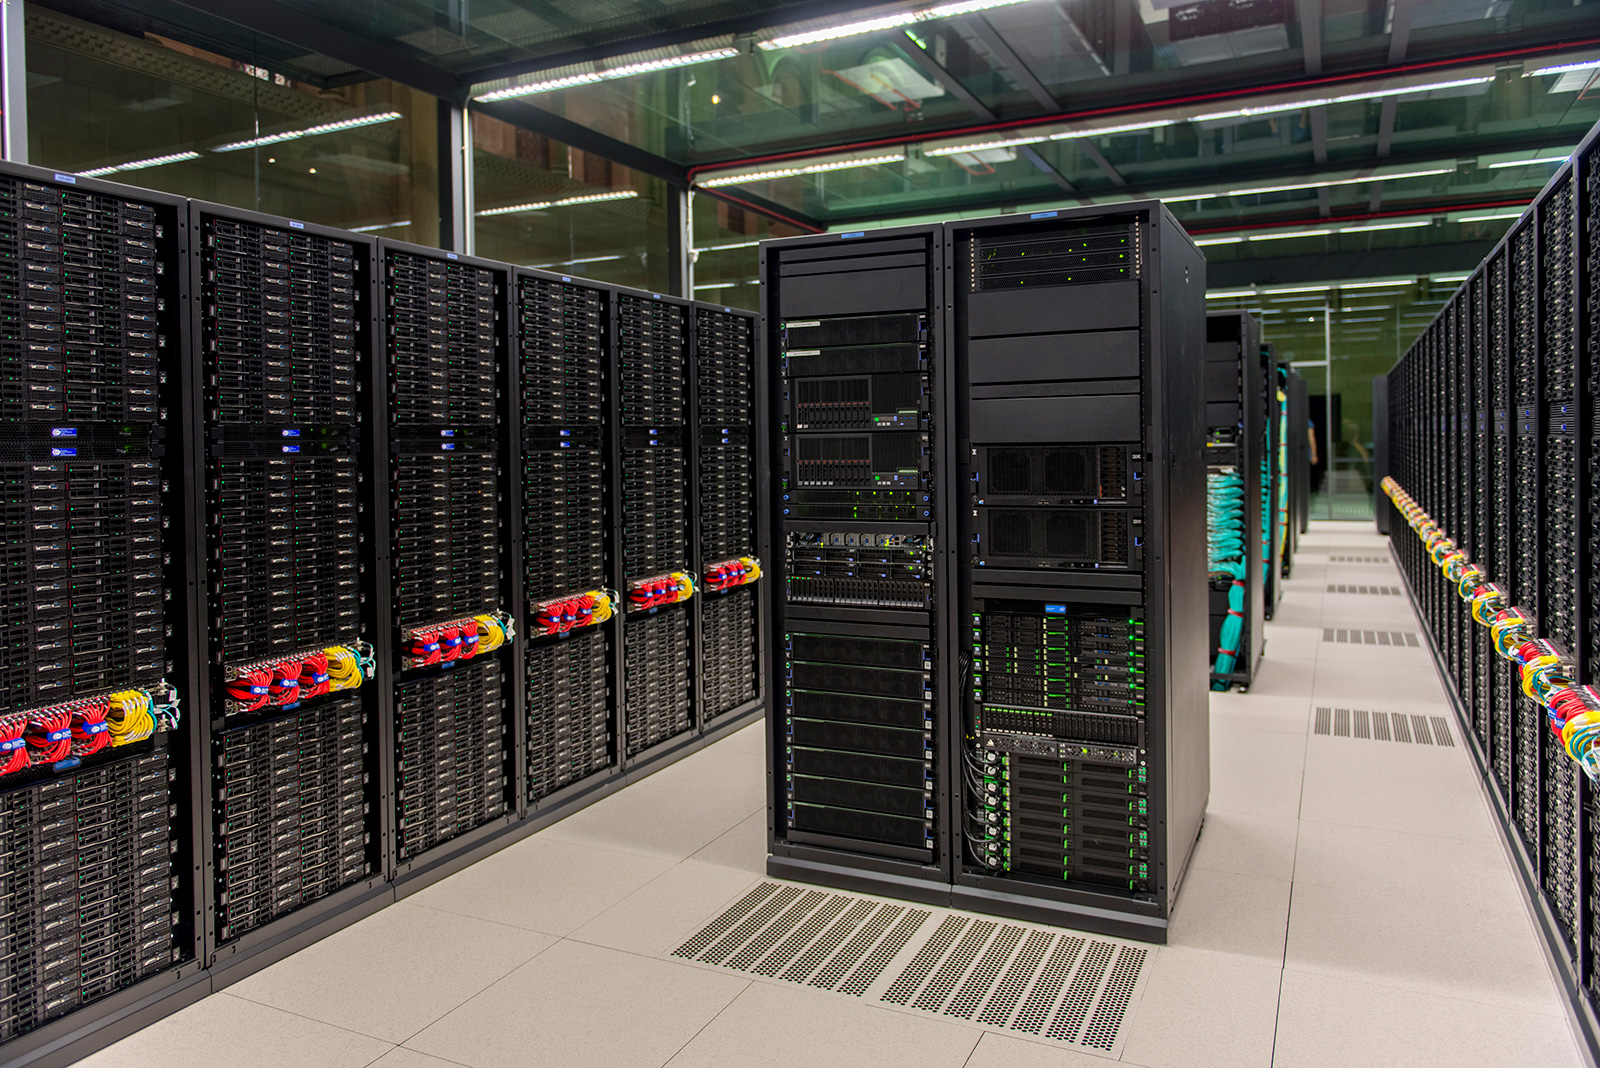 Visit our Supercomputer BSC-CNS